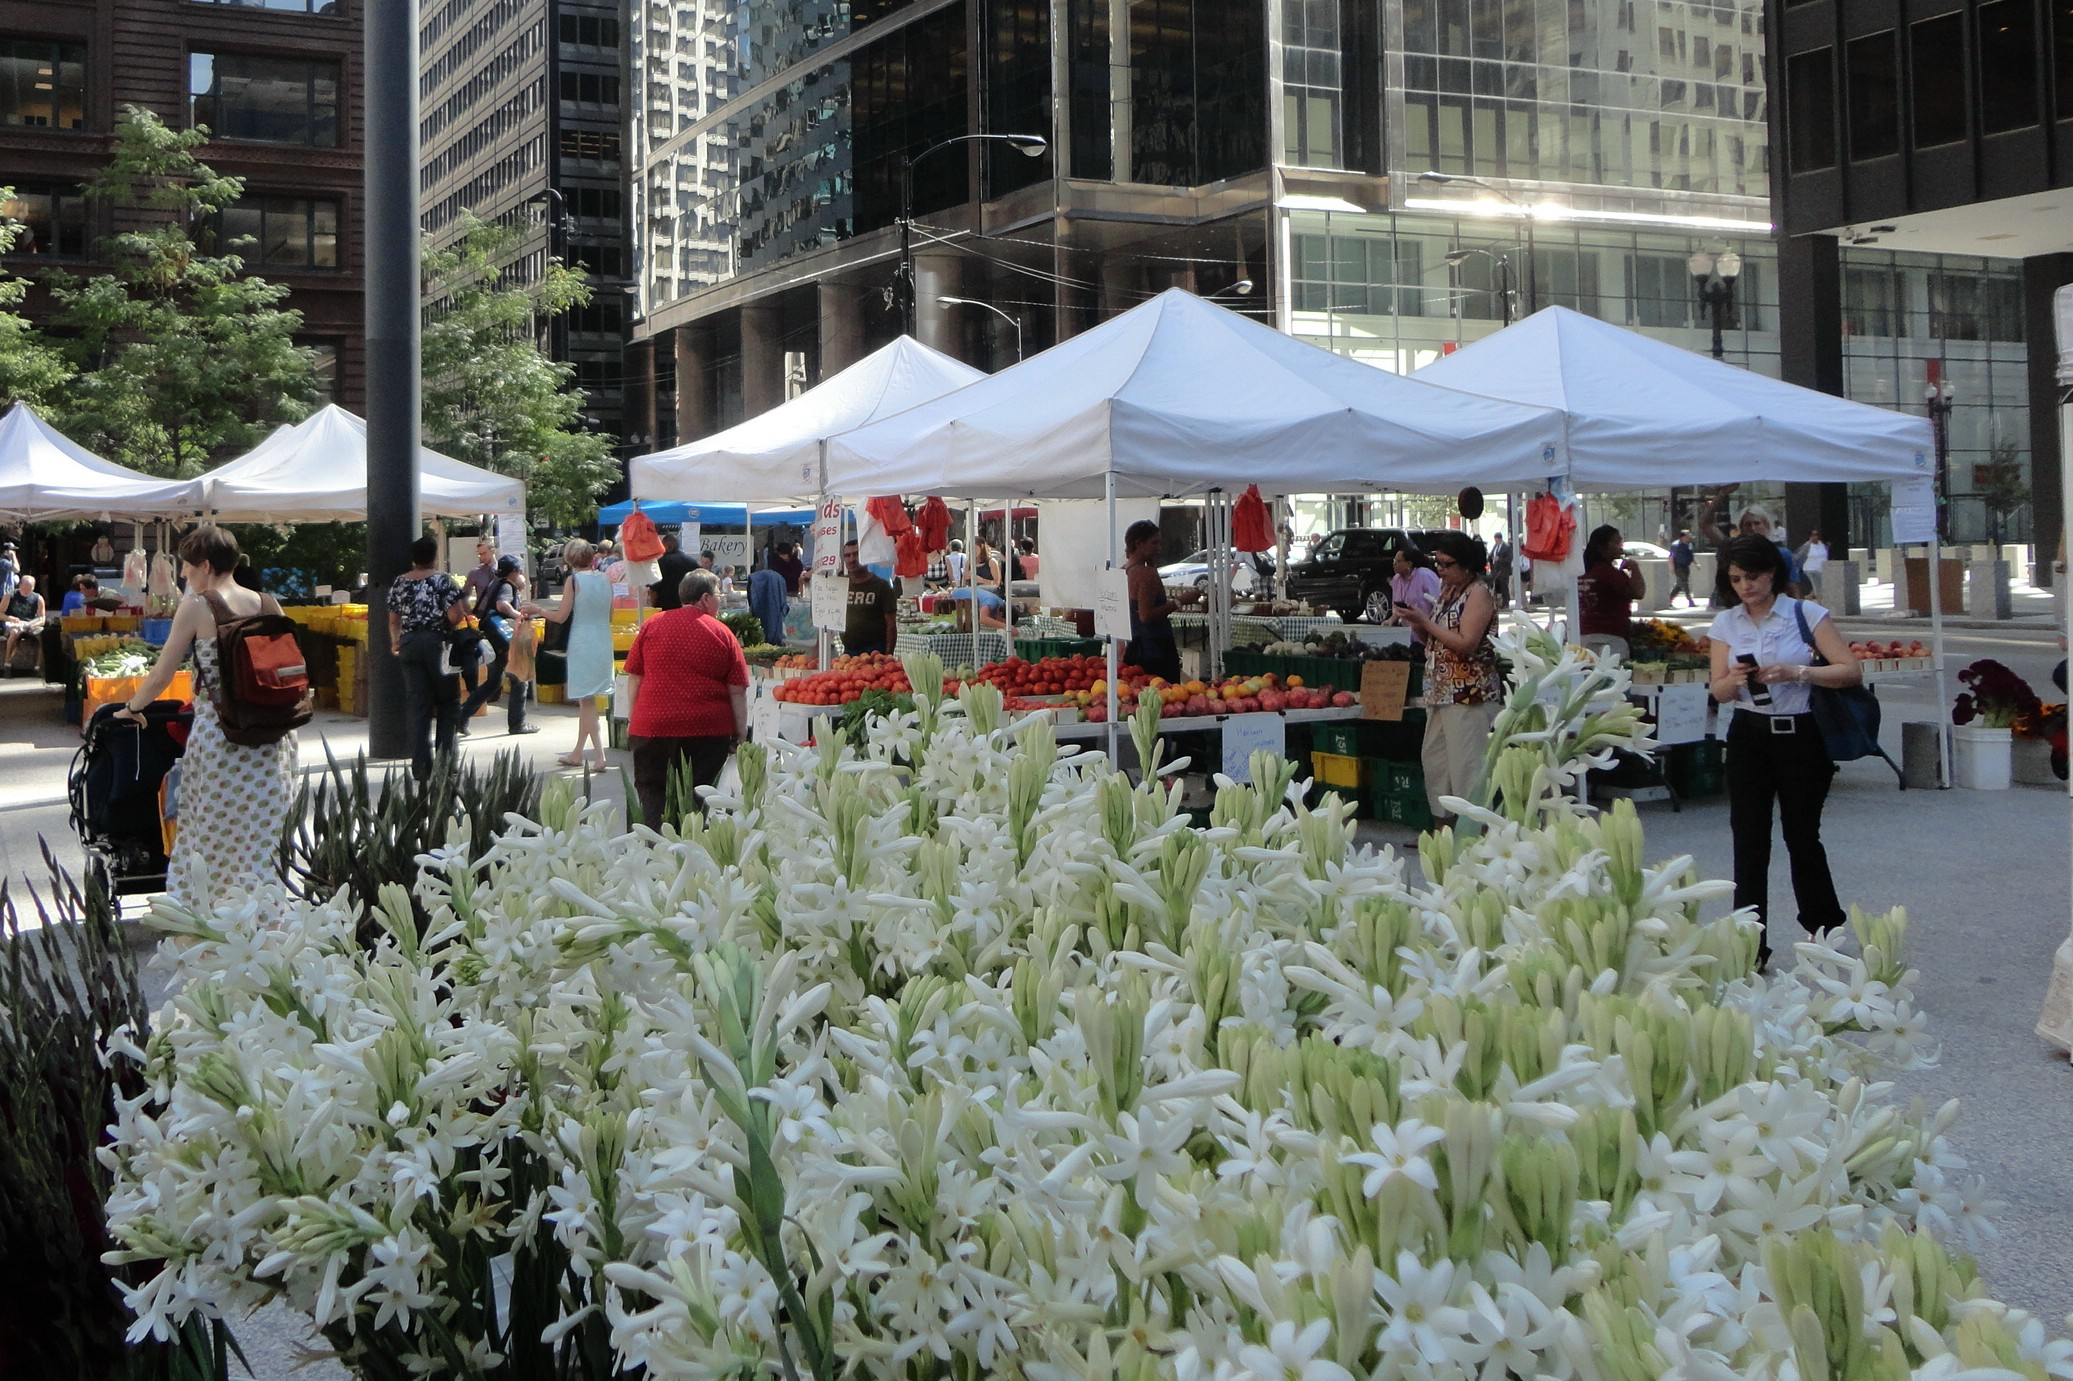 Downtown Chicago Farmer's Market